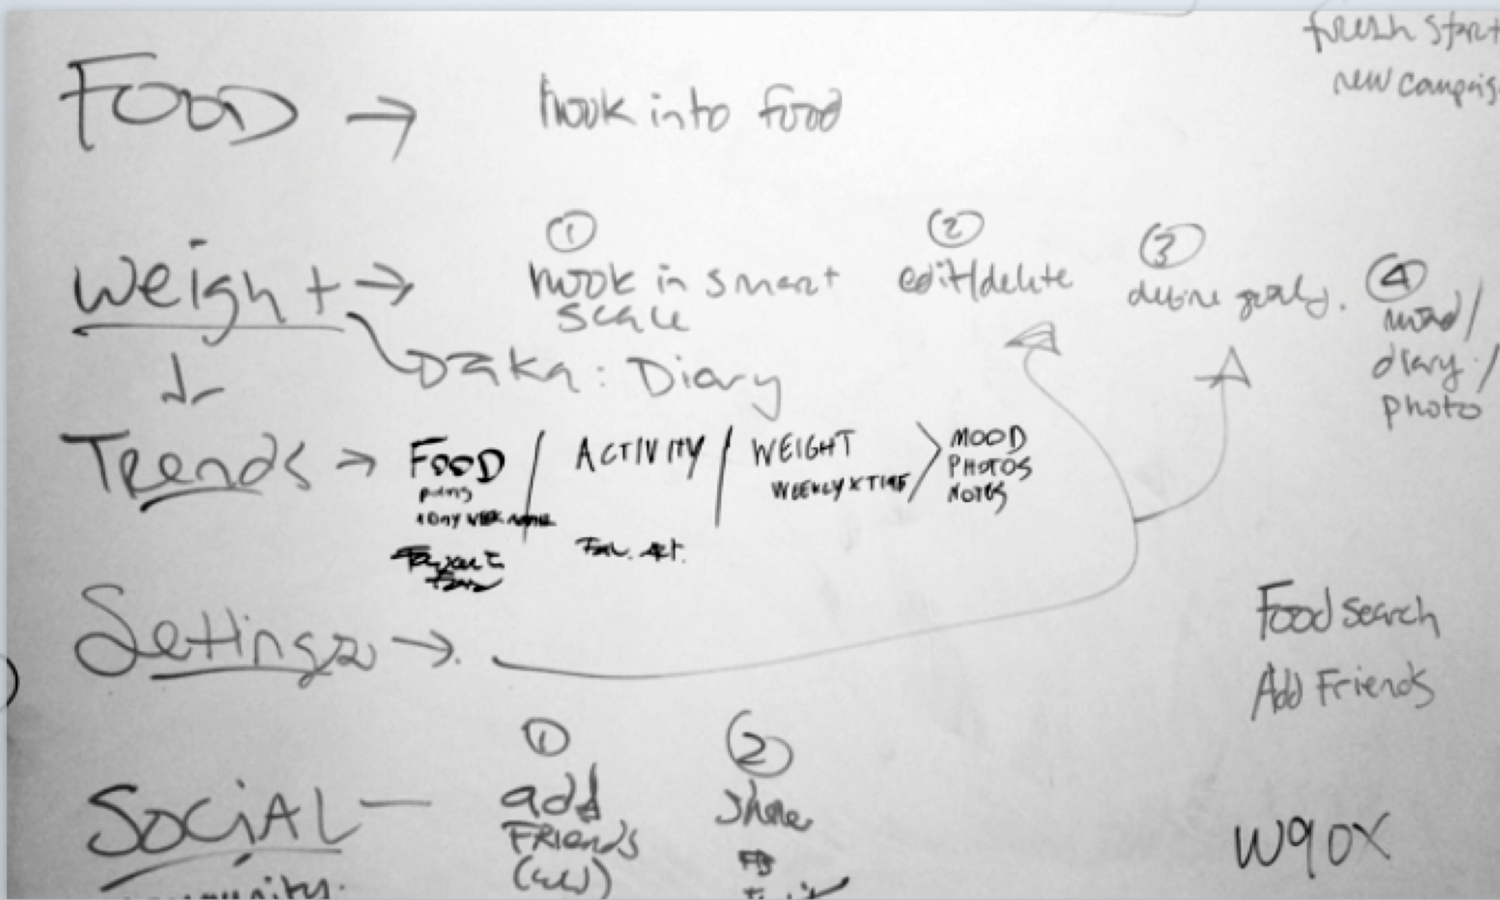 Whiteboard Ideation